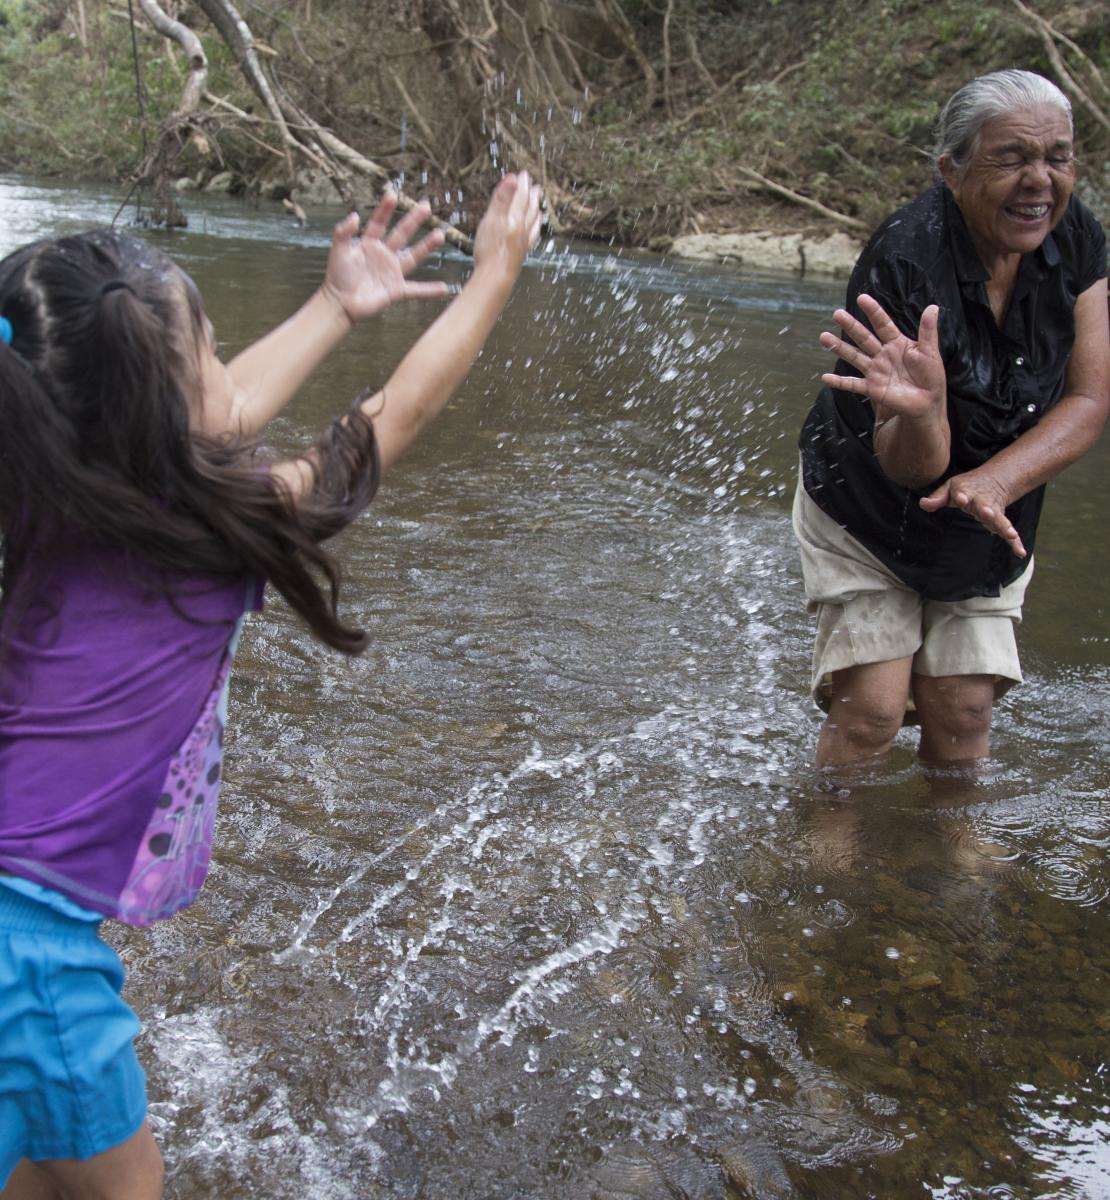 Four-year-old Allizon Stefany Escobar splashes her laughing great-grandmother, Conzuelo Flores, as they stand in shallow water at a river near their home, in Cayo District.